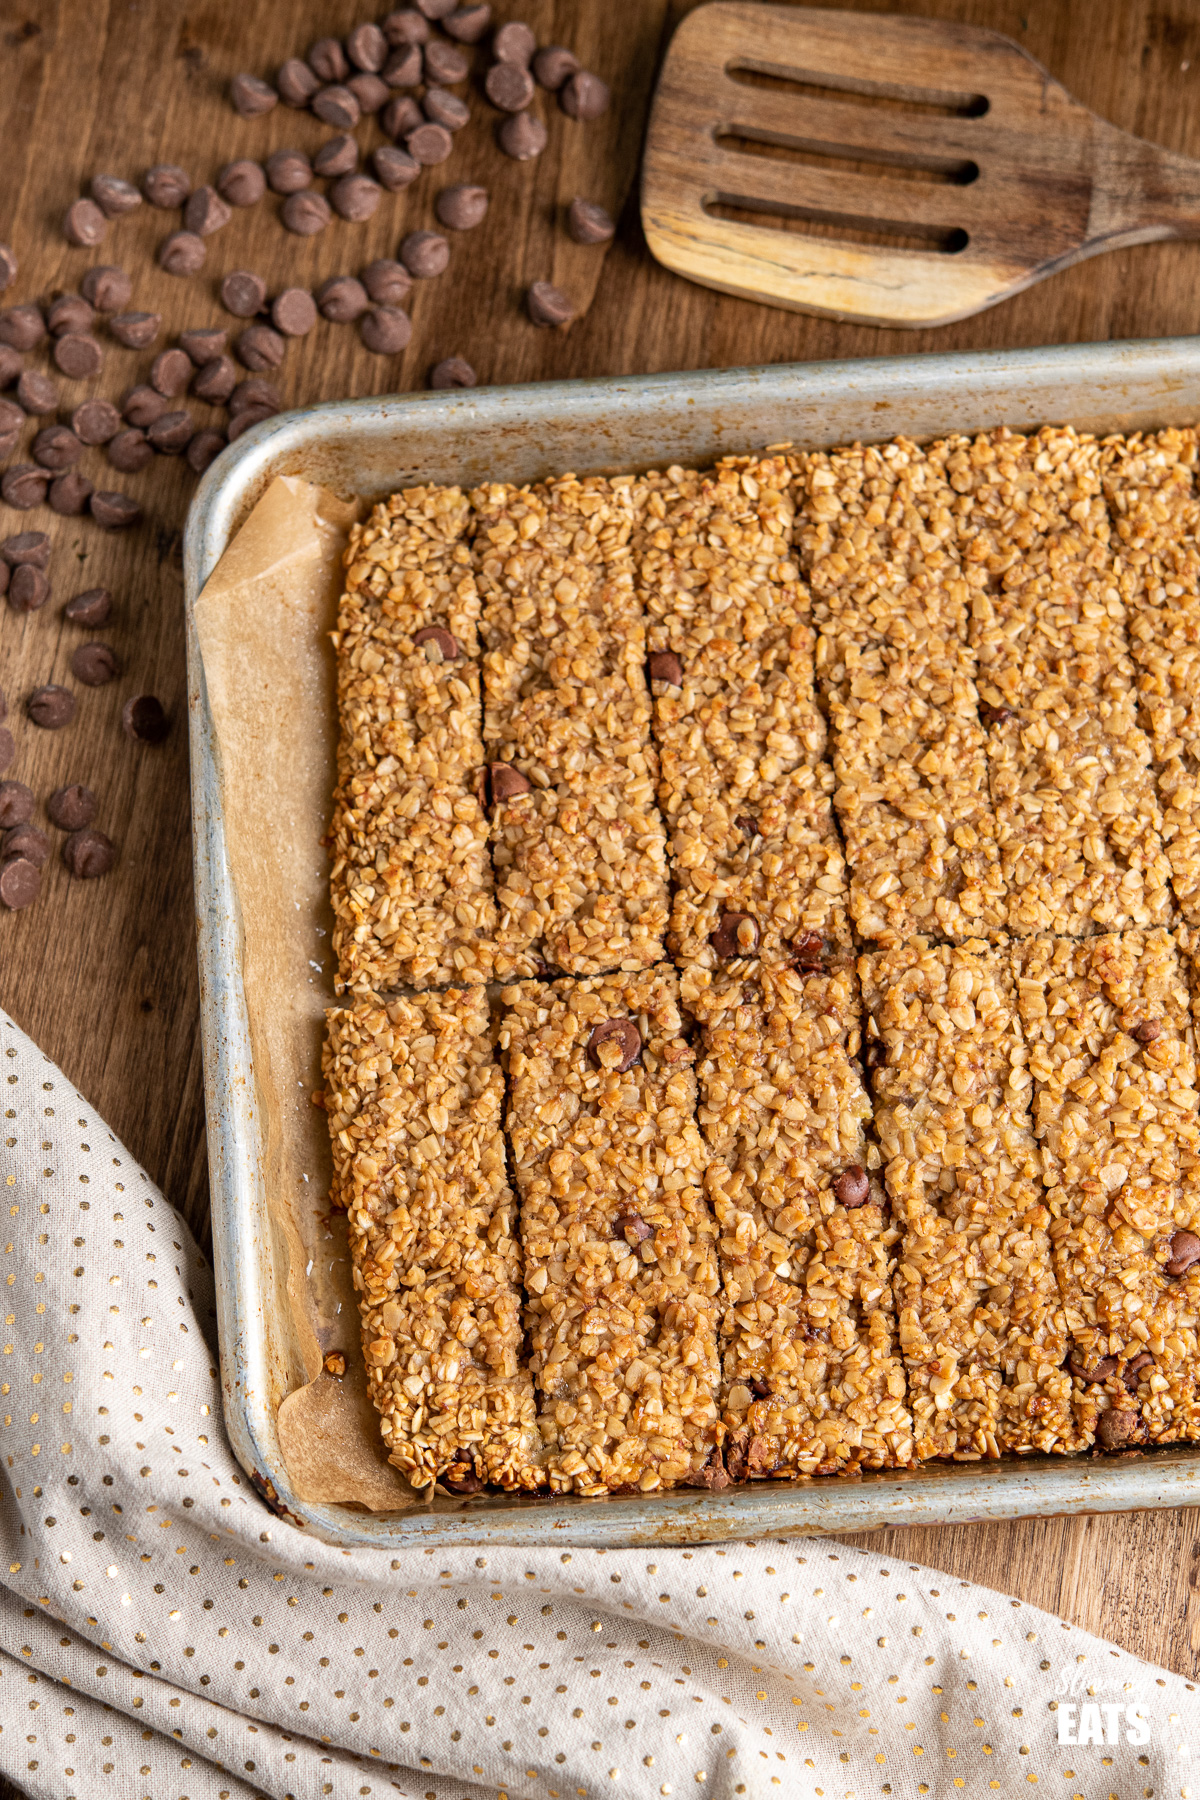 Healthy Chocolate Chip Banana Granola Bars on a baking tray with scattered chocolate chips on wooden board